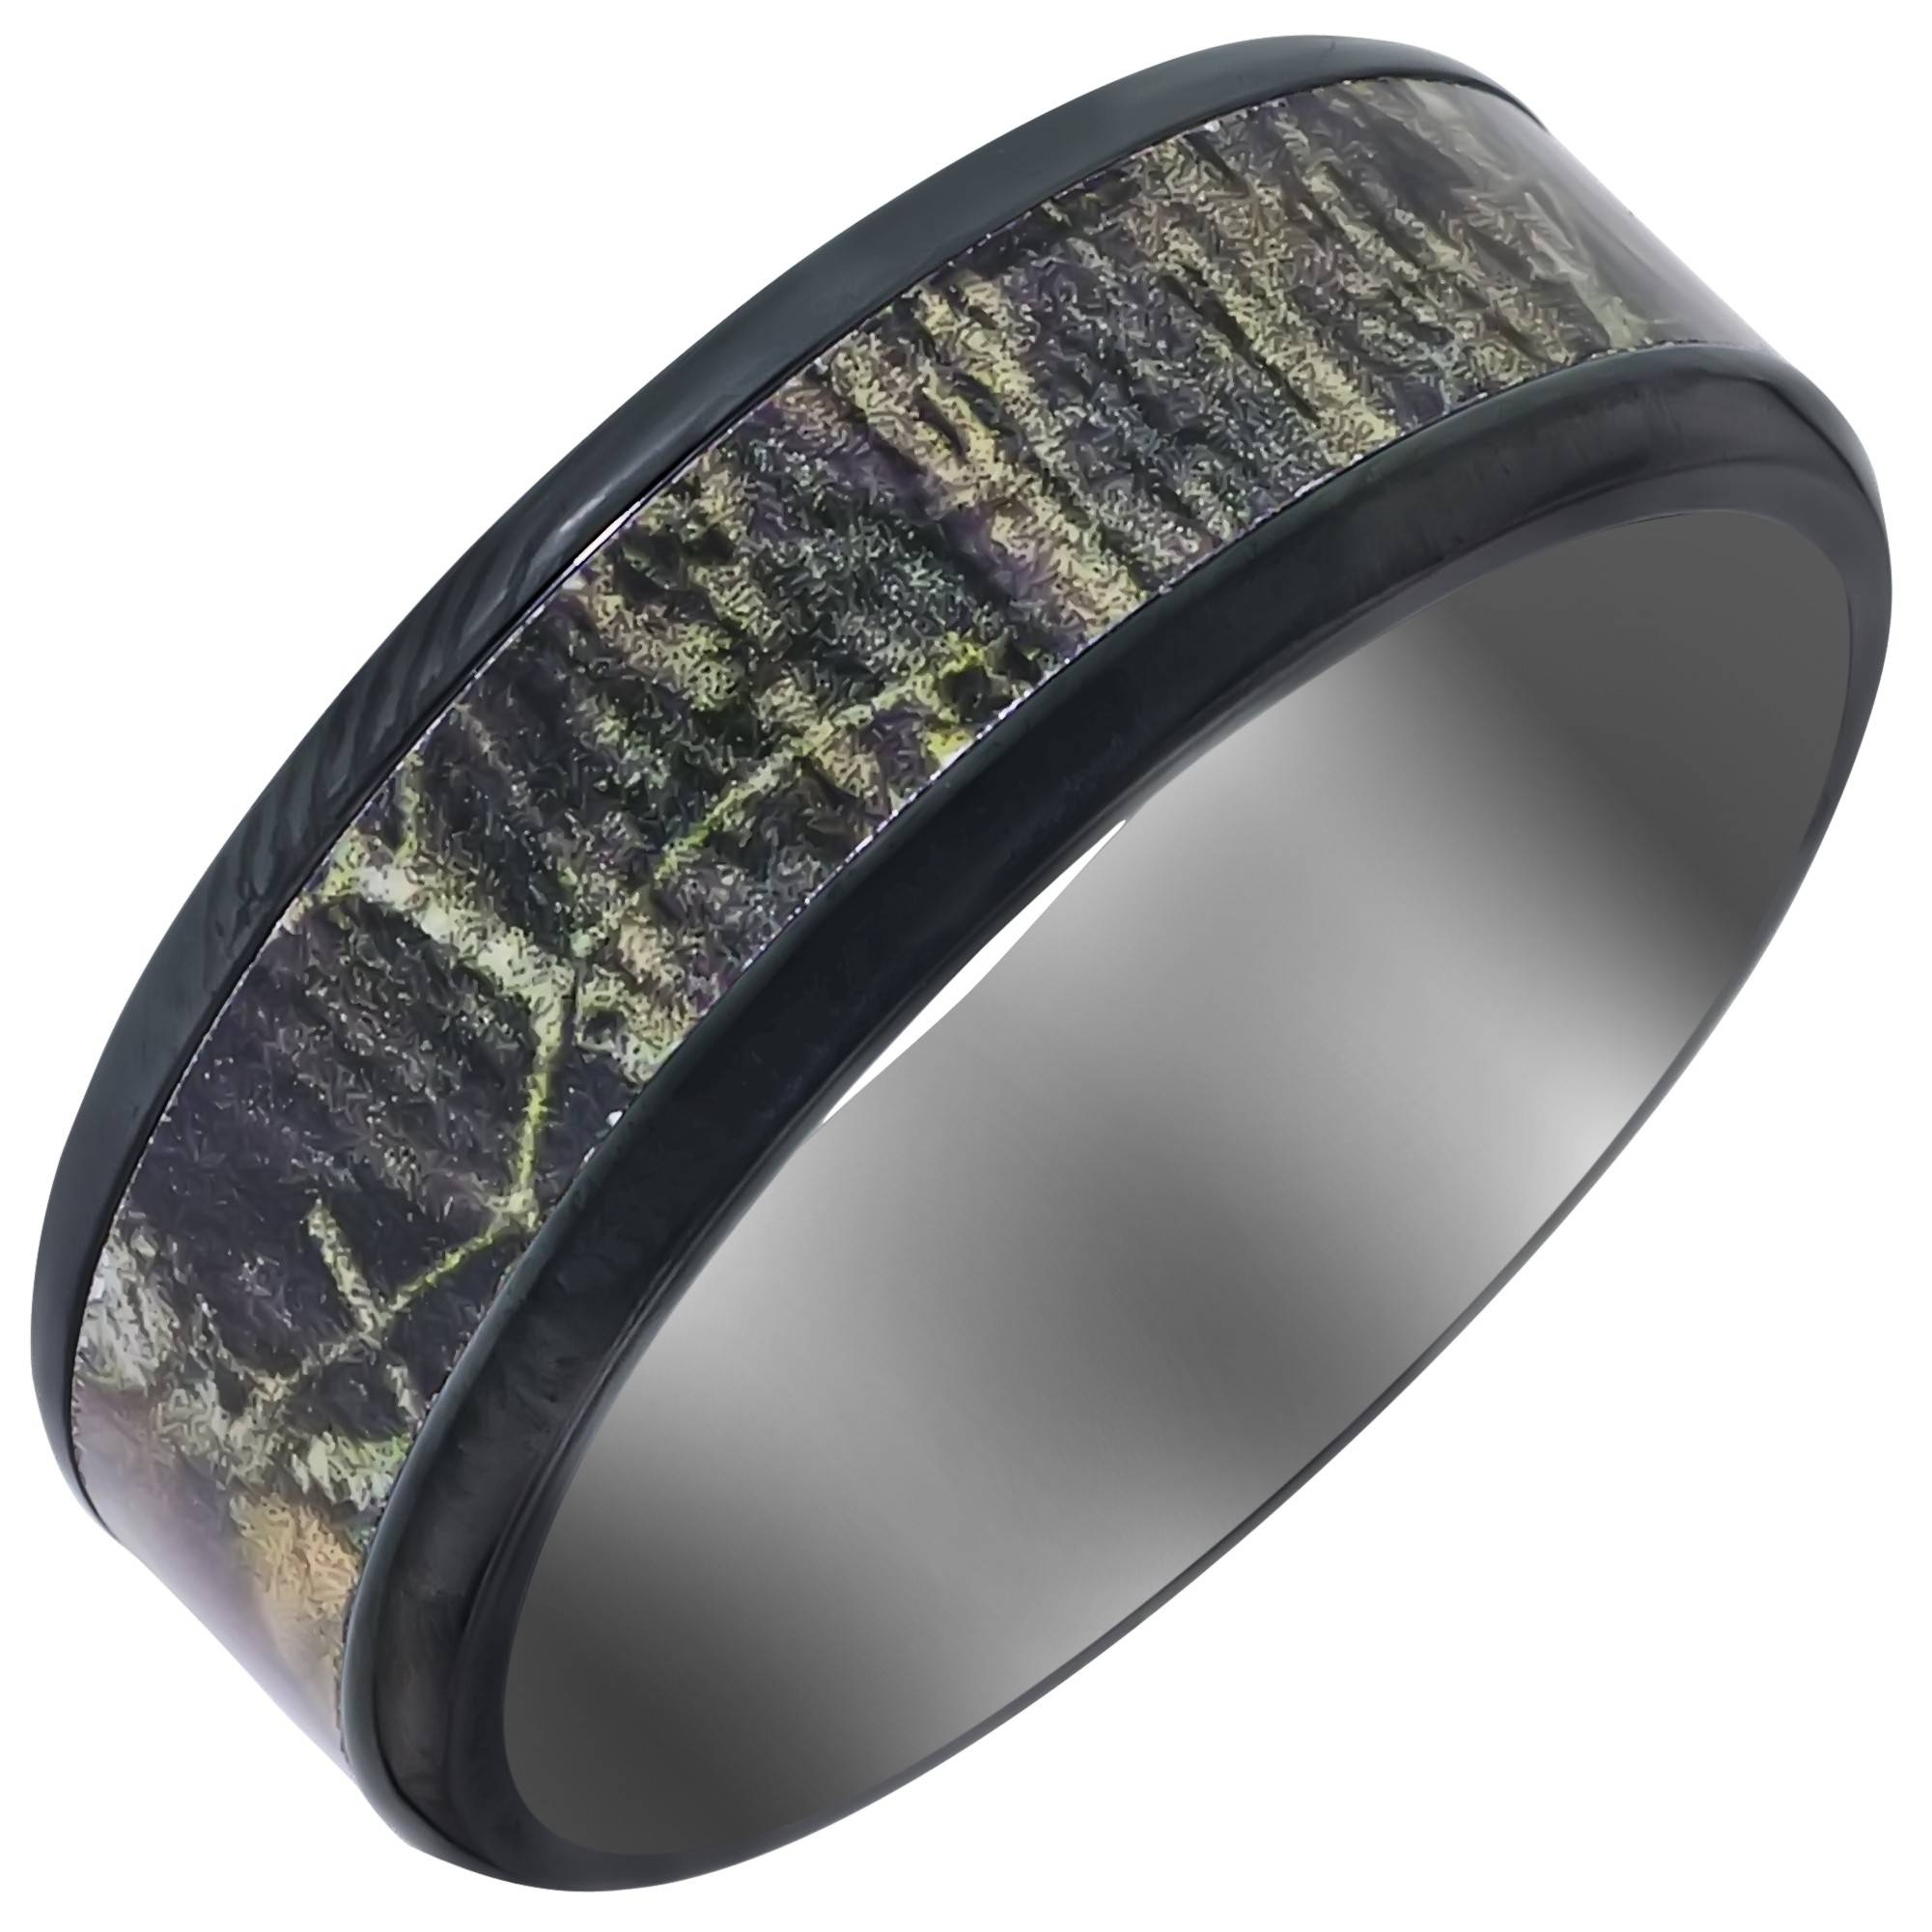 Mens Zirconium Mossyoak Camo Wedding Band (8mm) Intended For Mens Camouflage Wedding Bands (View 3 of 15)